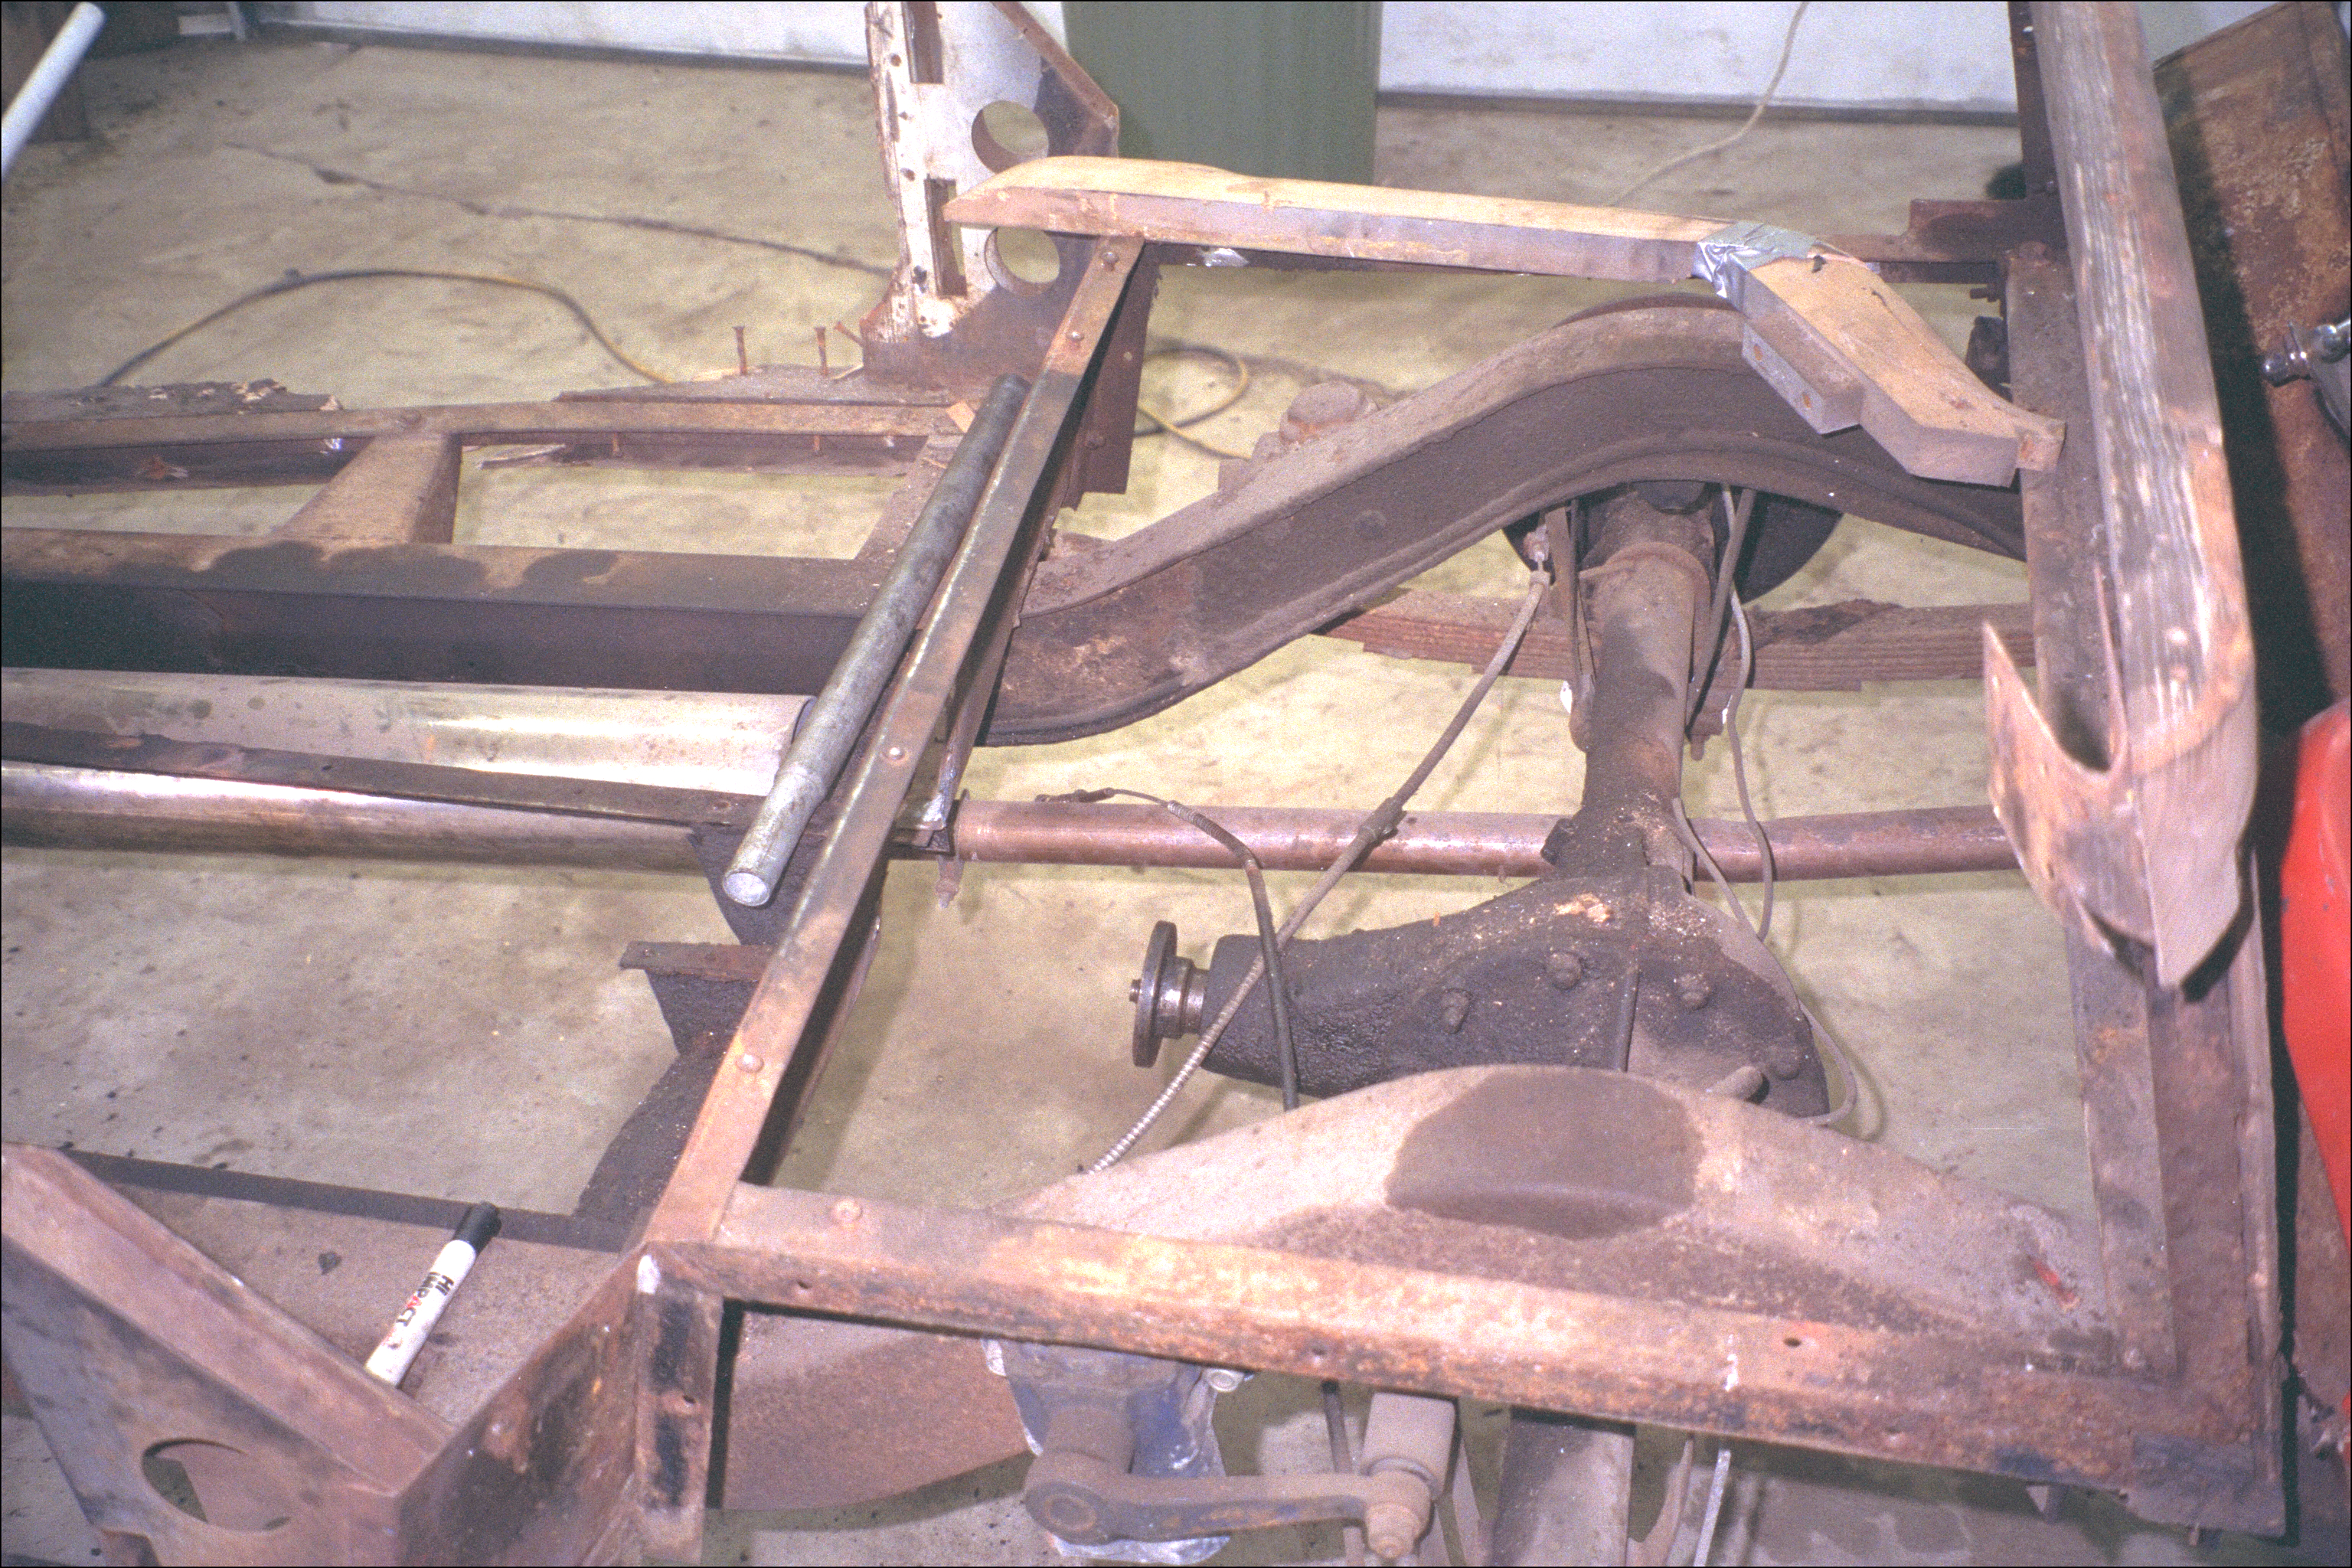 Shaft-joint of universal, with shaft removed